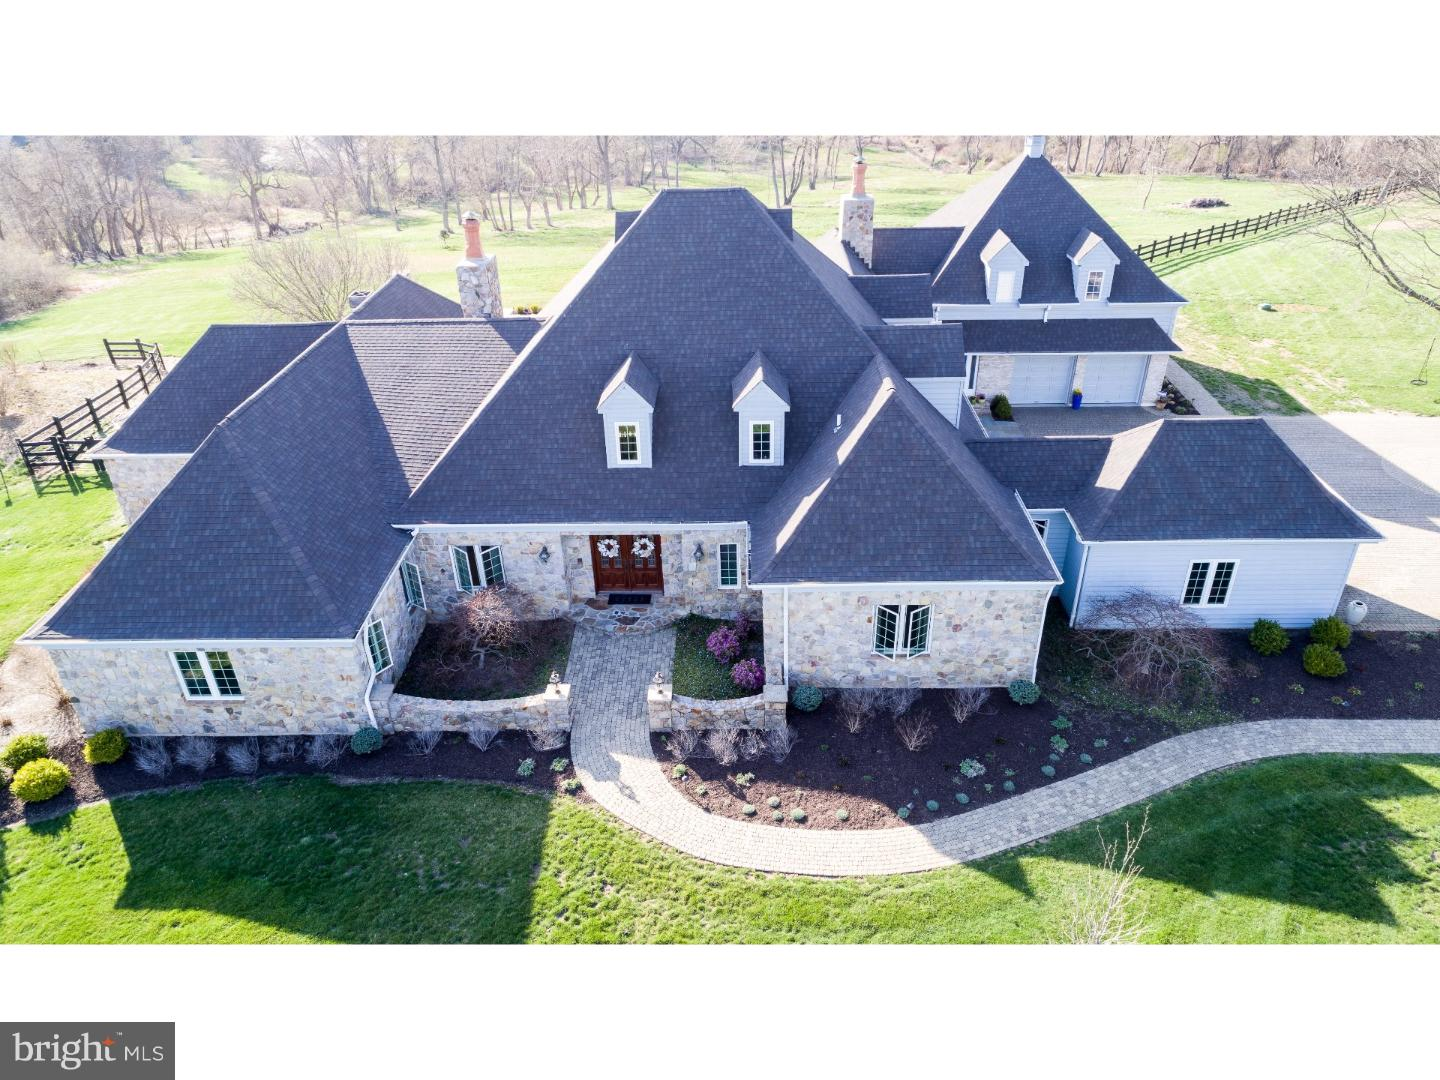 104 GREY DOVE DRIVE, CHADDS FORD, PA 19317